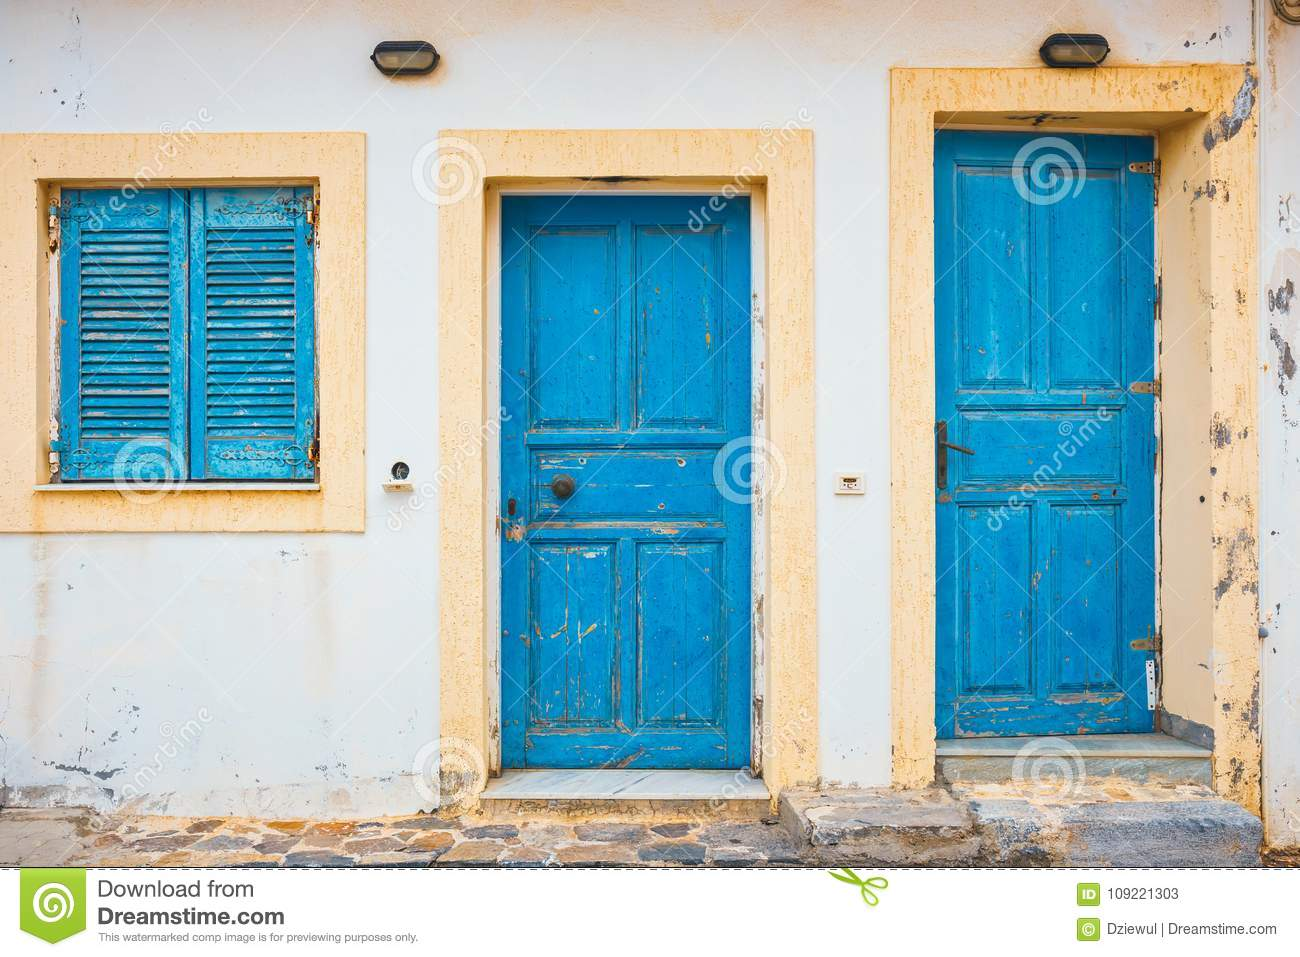 Www Country Door Com.Blue Shutters And Doors On A White Wall Stock Image Image